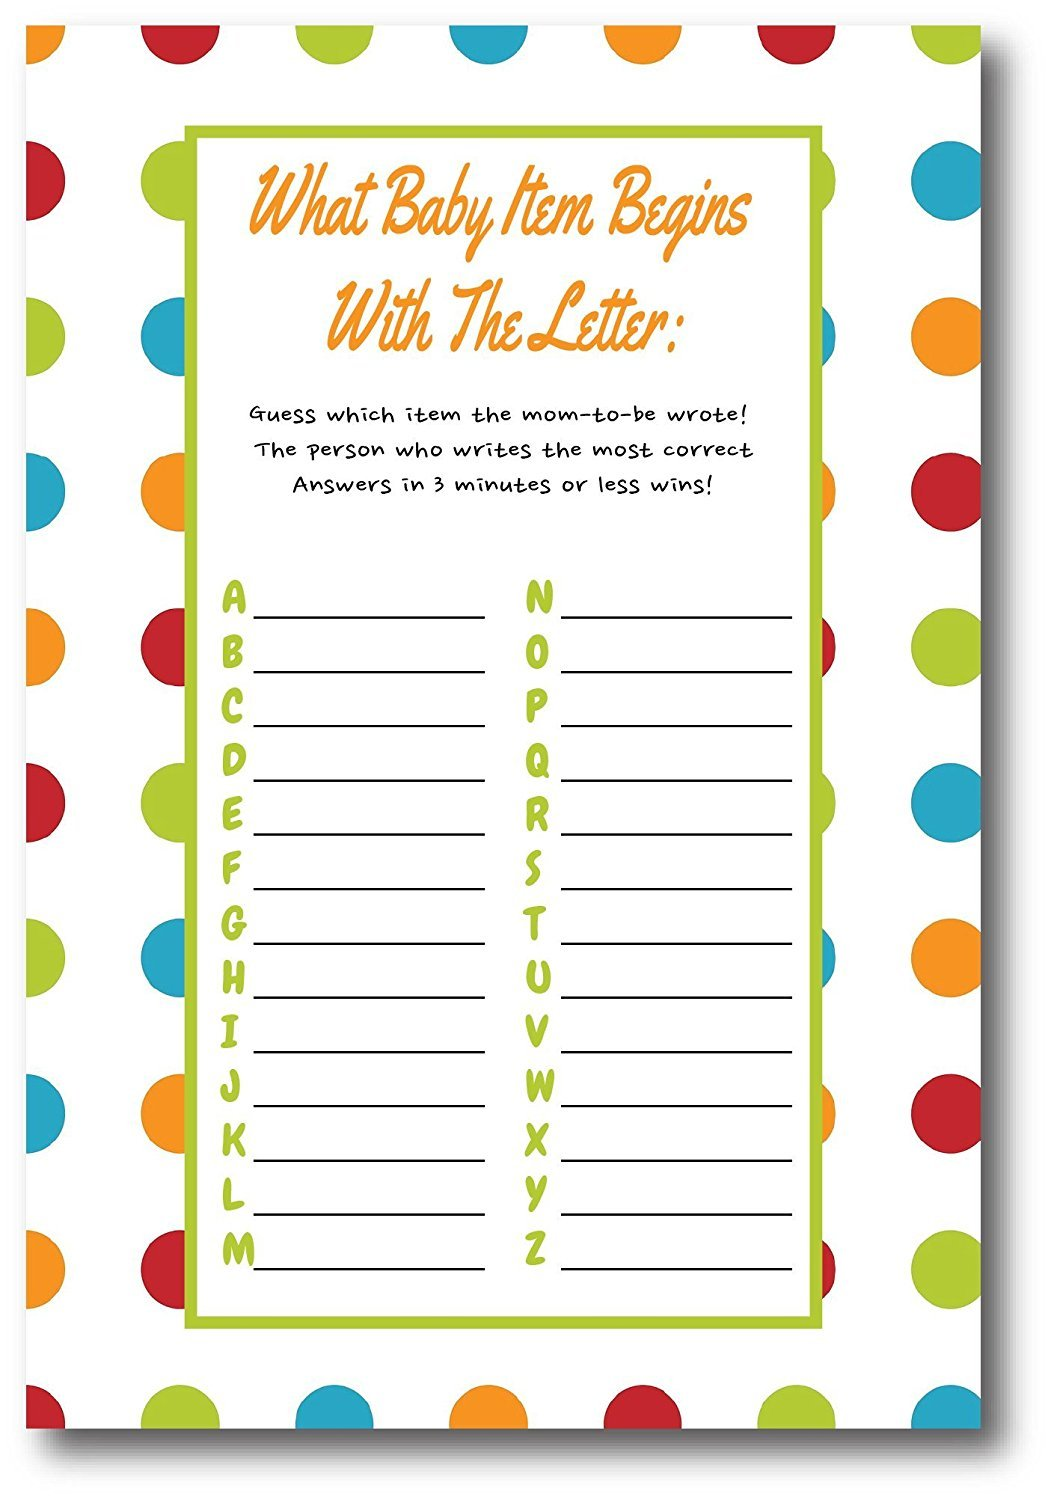 Baby Shower Games For Gender Neutral | By L&P Designs | Baby Party Ideas (What Baby Item Begins) by L&P Designs